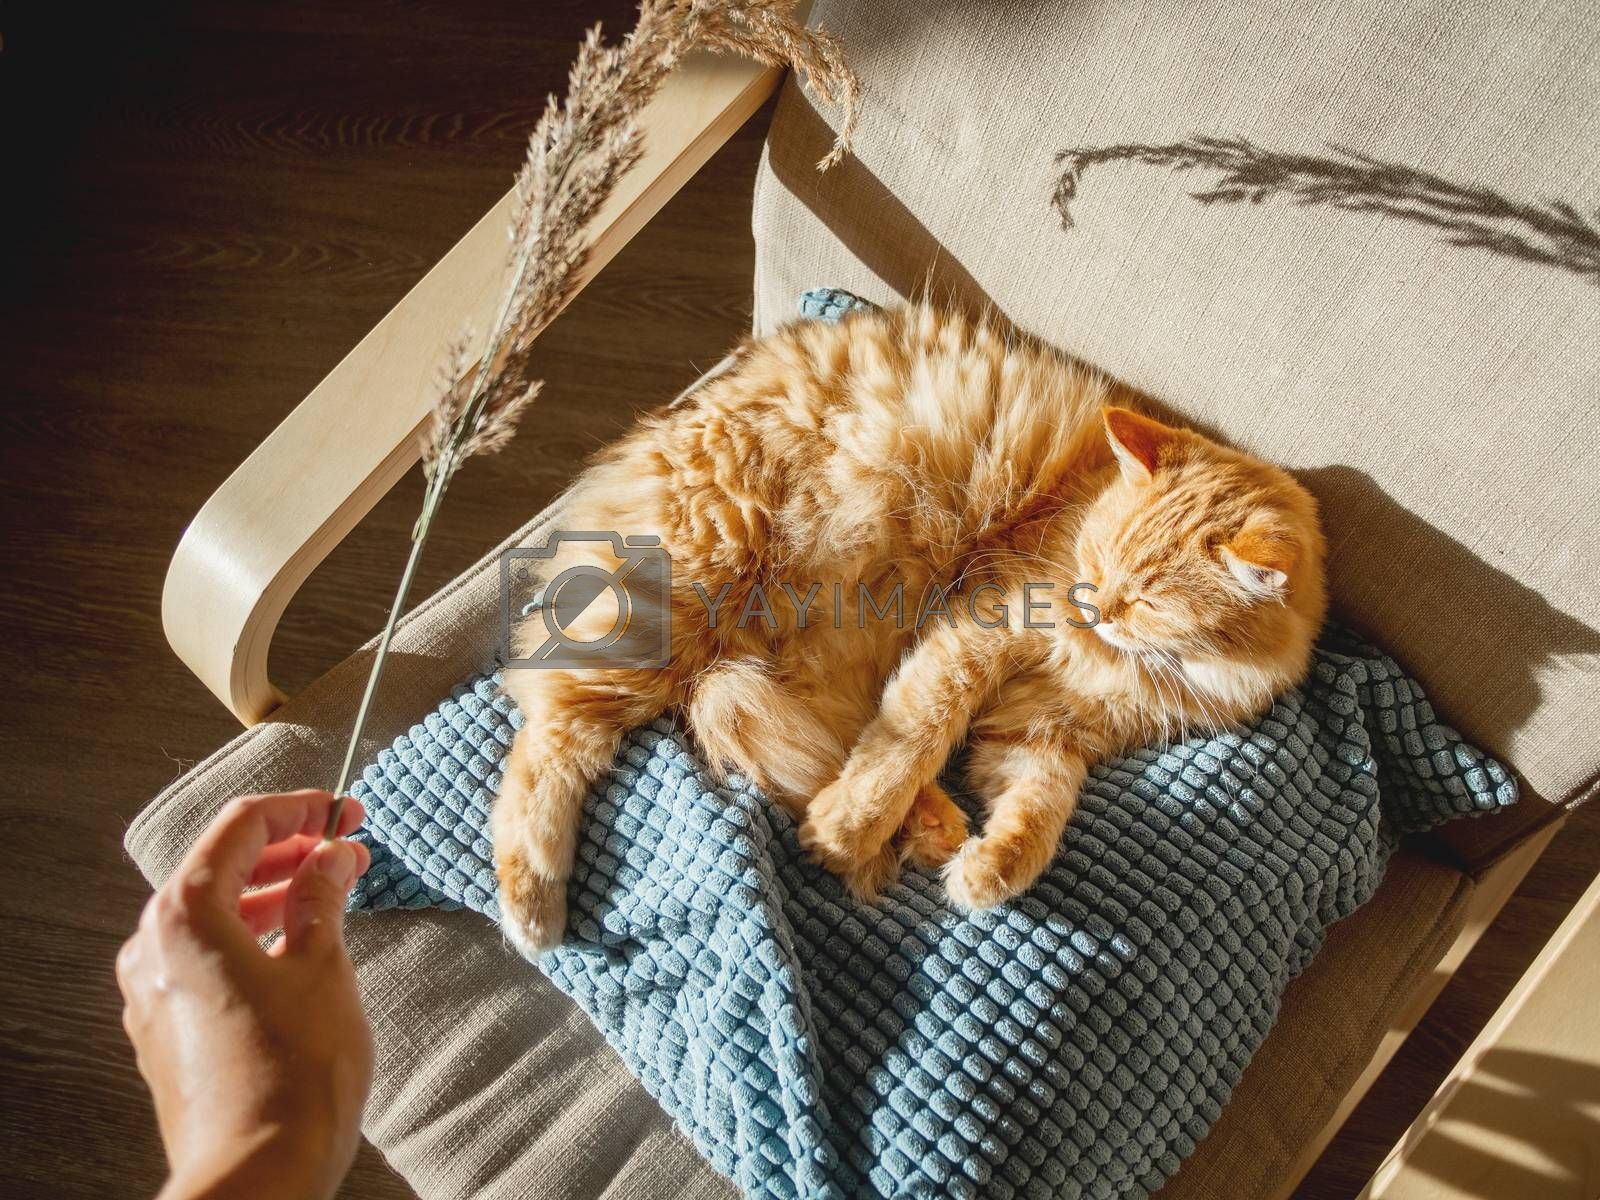 Top view on cute ginger cat lying on pillow. Woman id using dried grass used as toy for fluffy pet. Cozy home lit with sun.